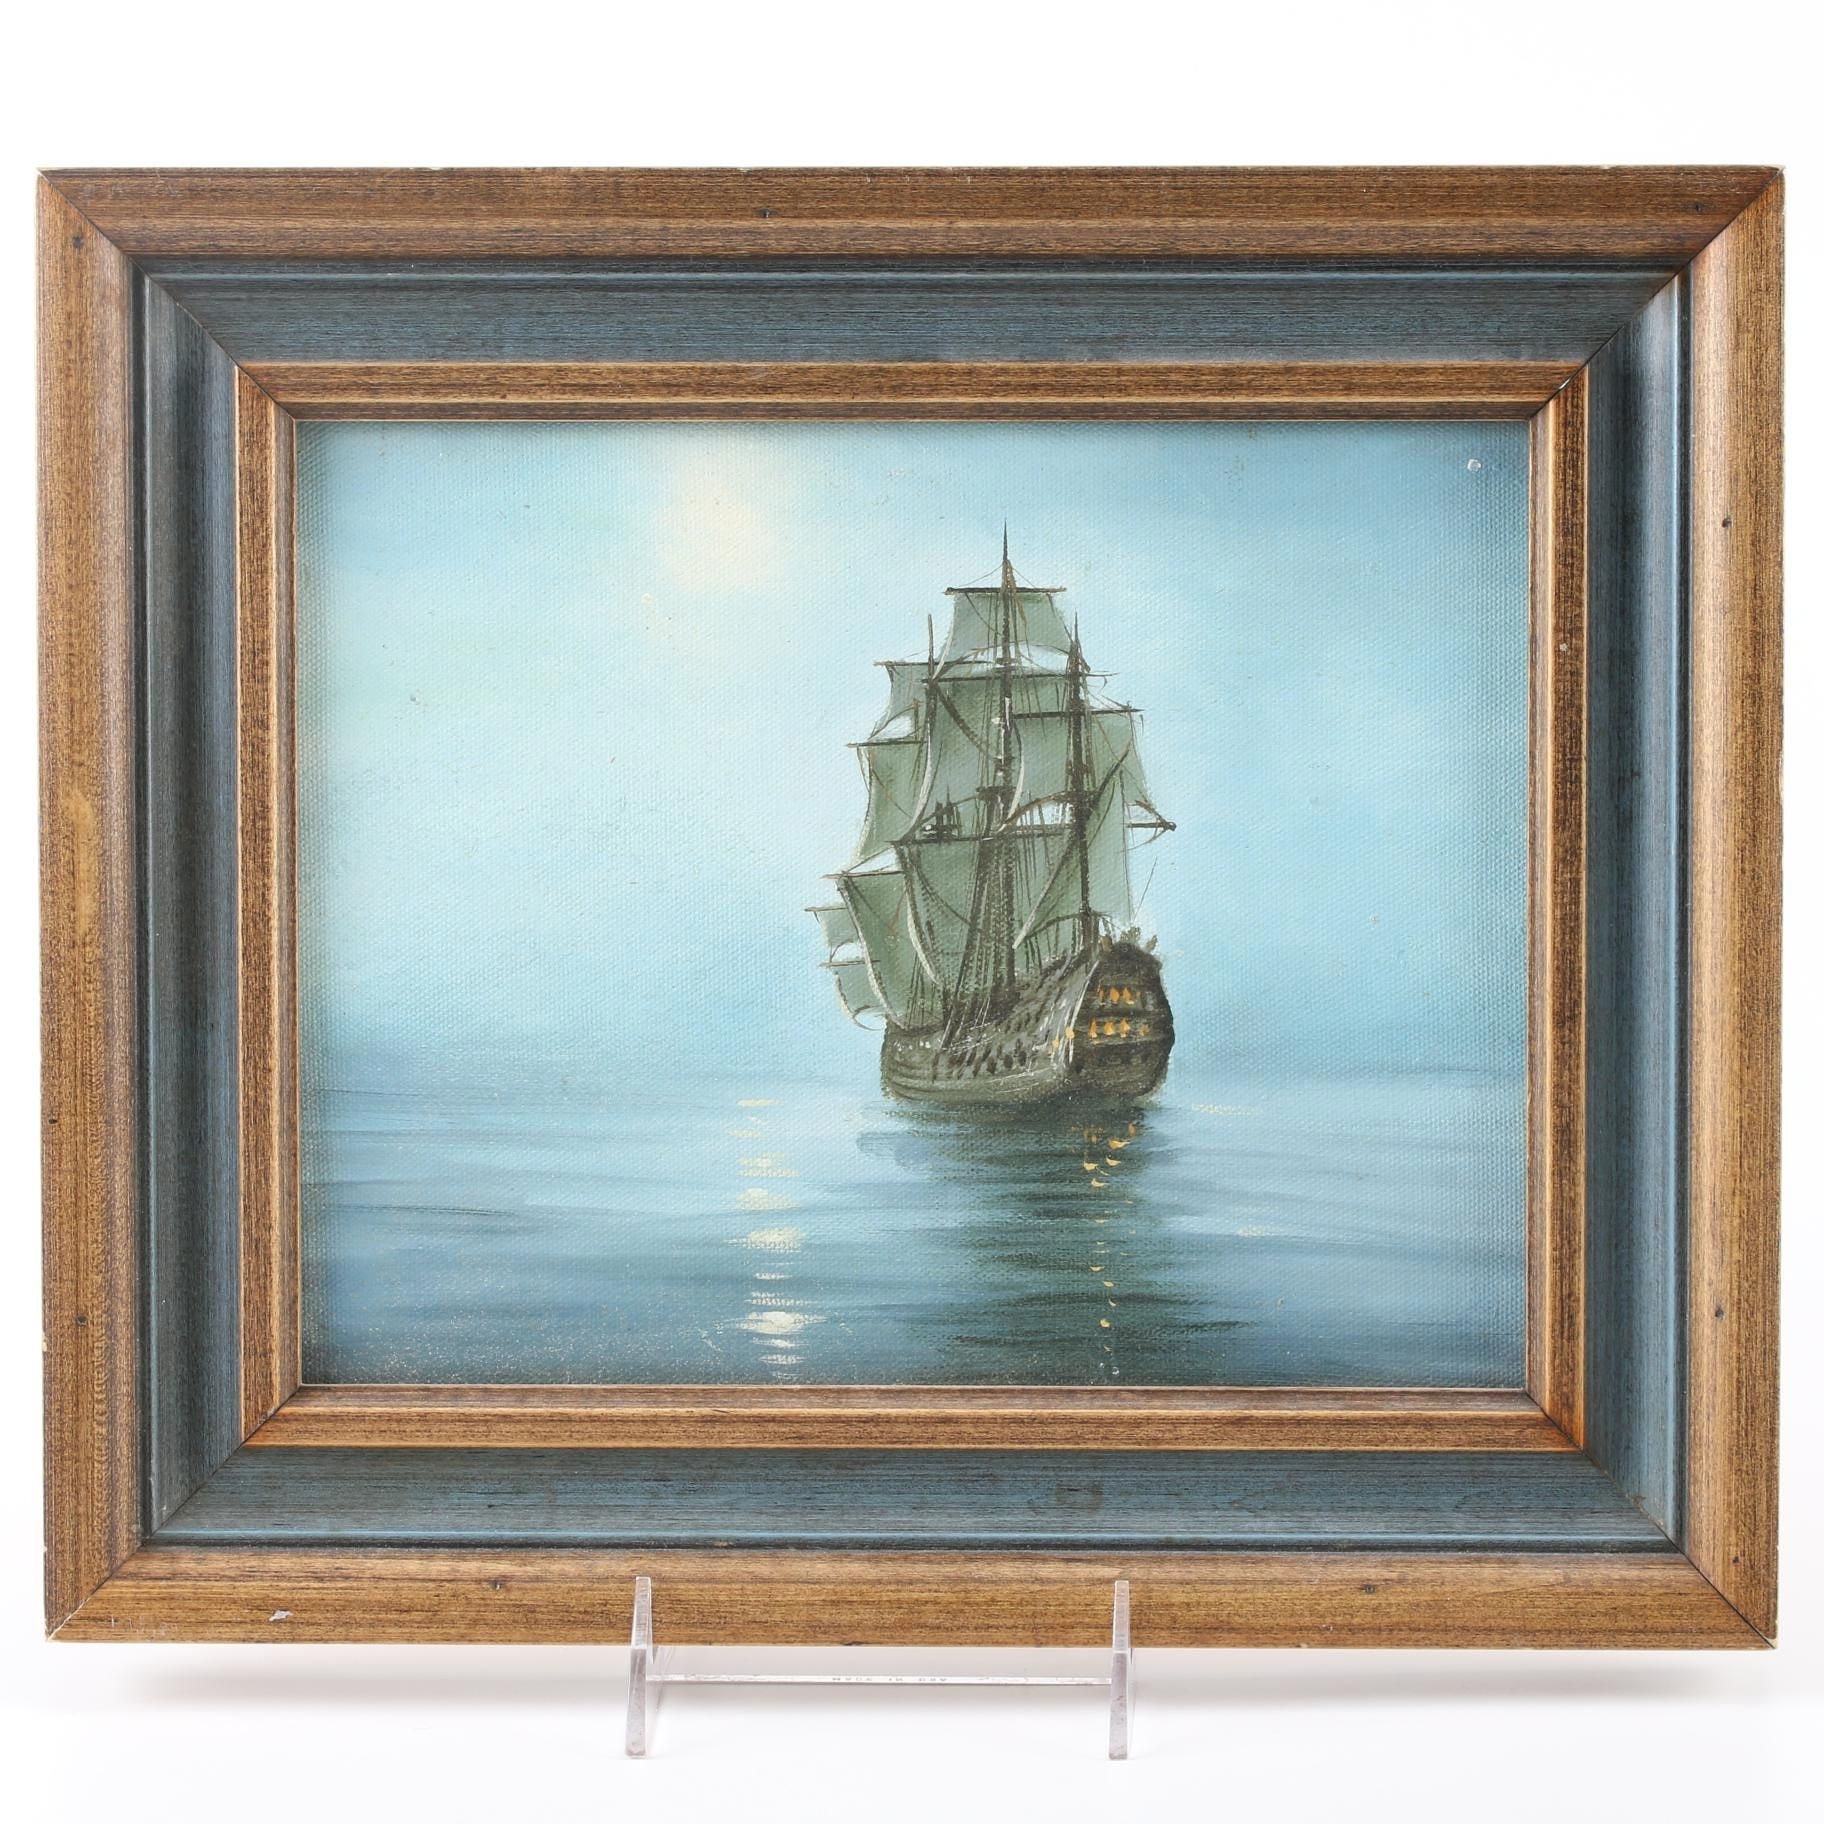 Oil Painting on Canvas Board of Sailing Ship